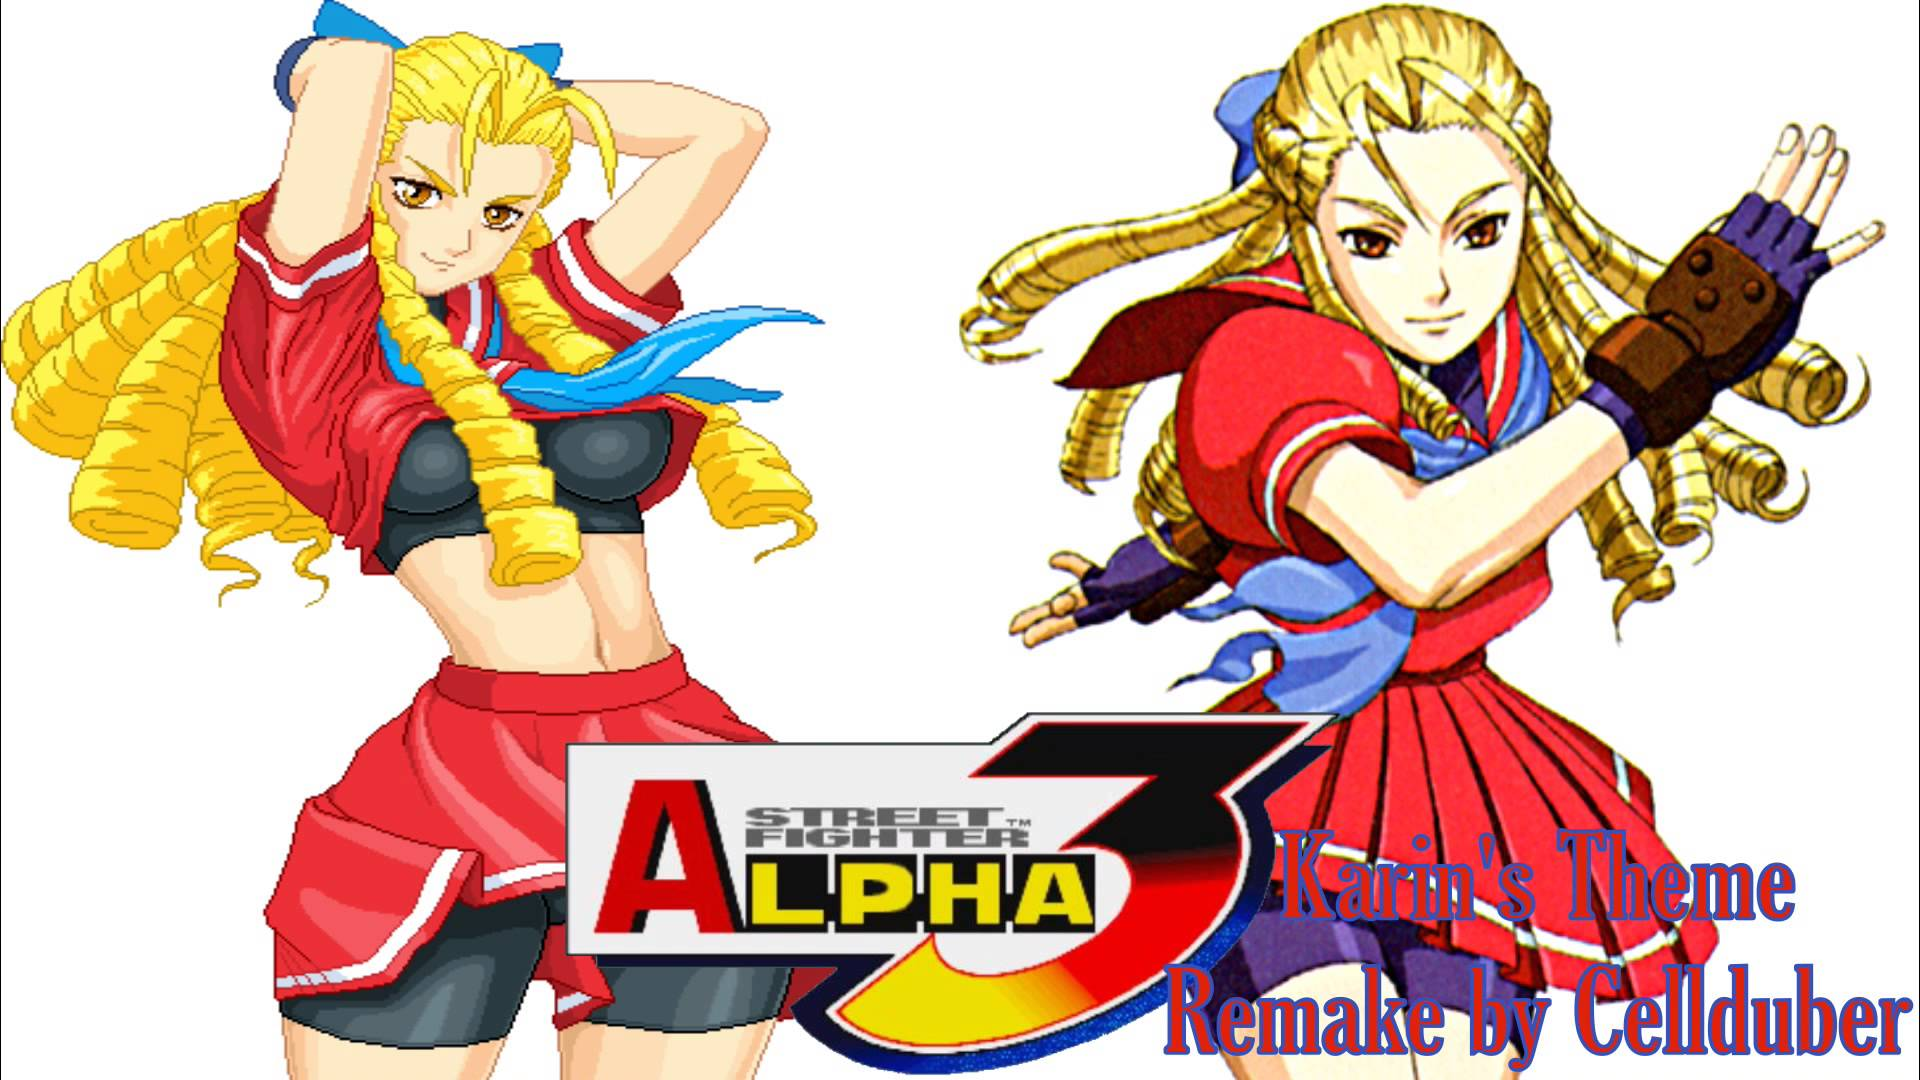 Street Fighter Alpha 3 Wallpaper